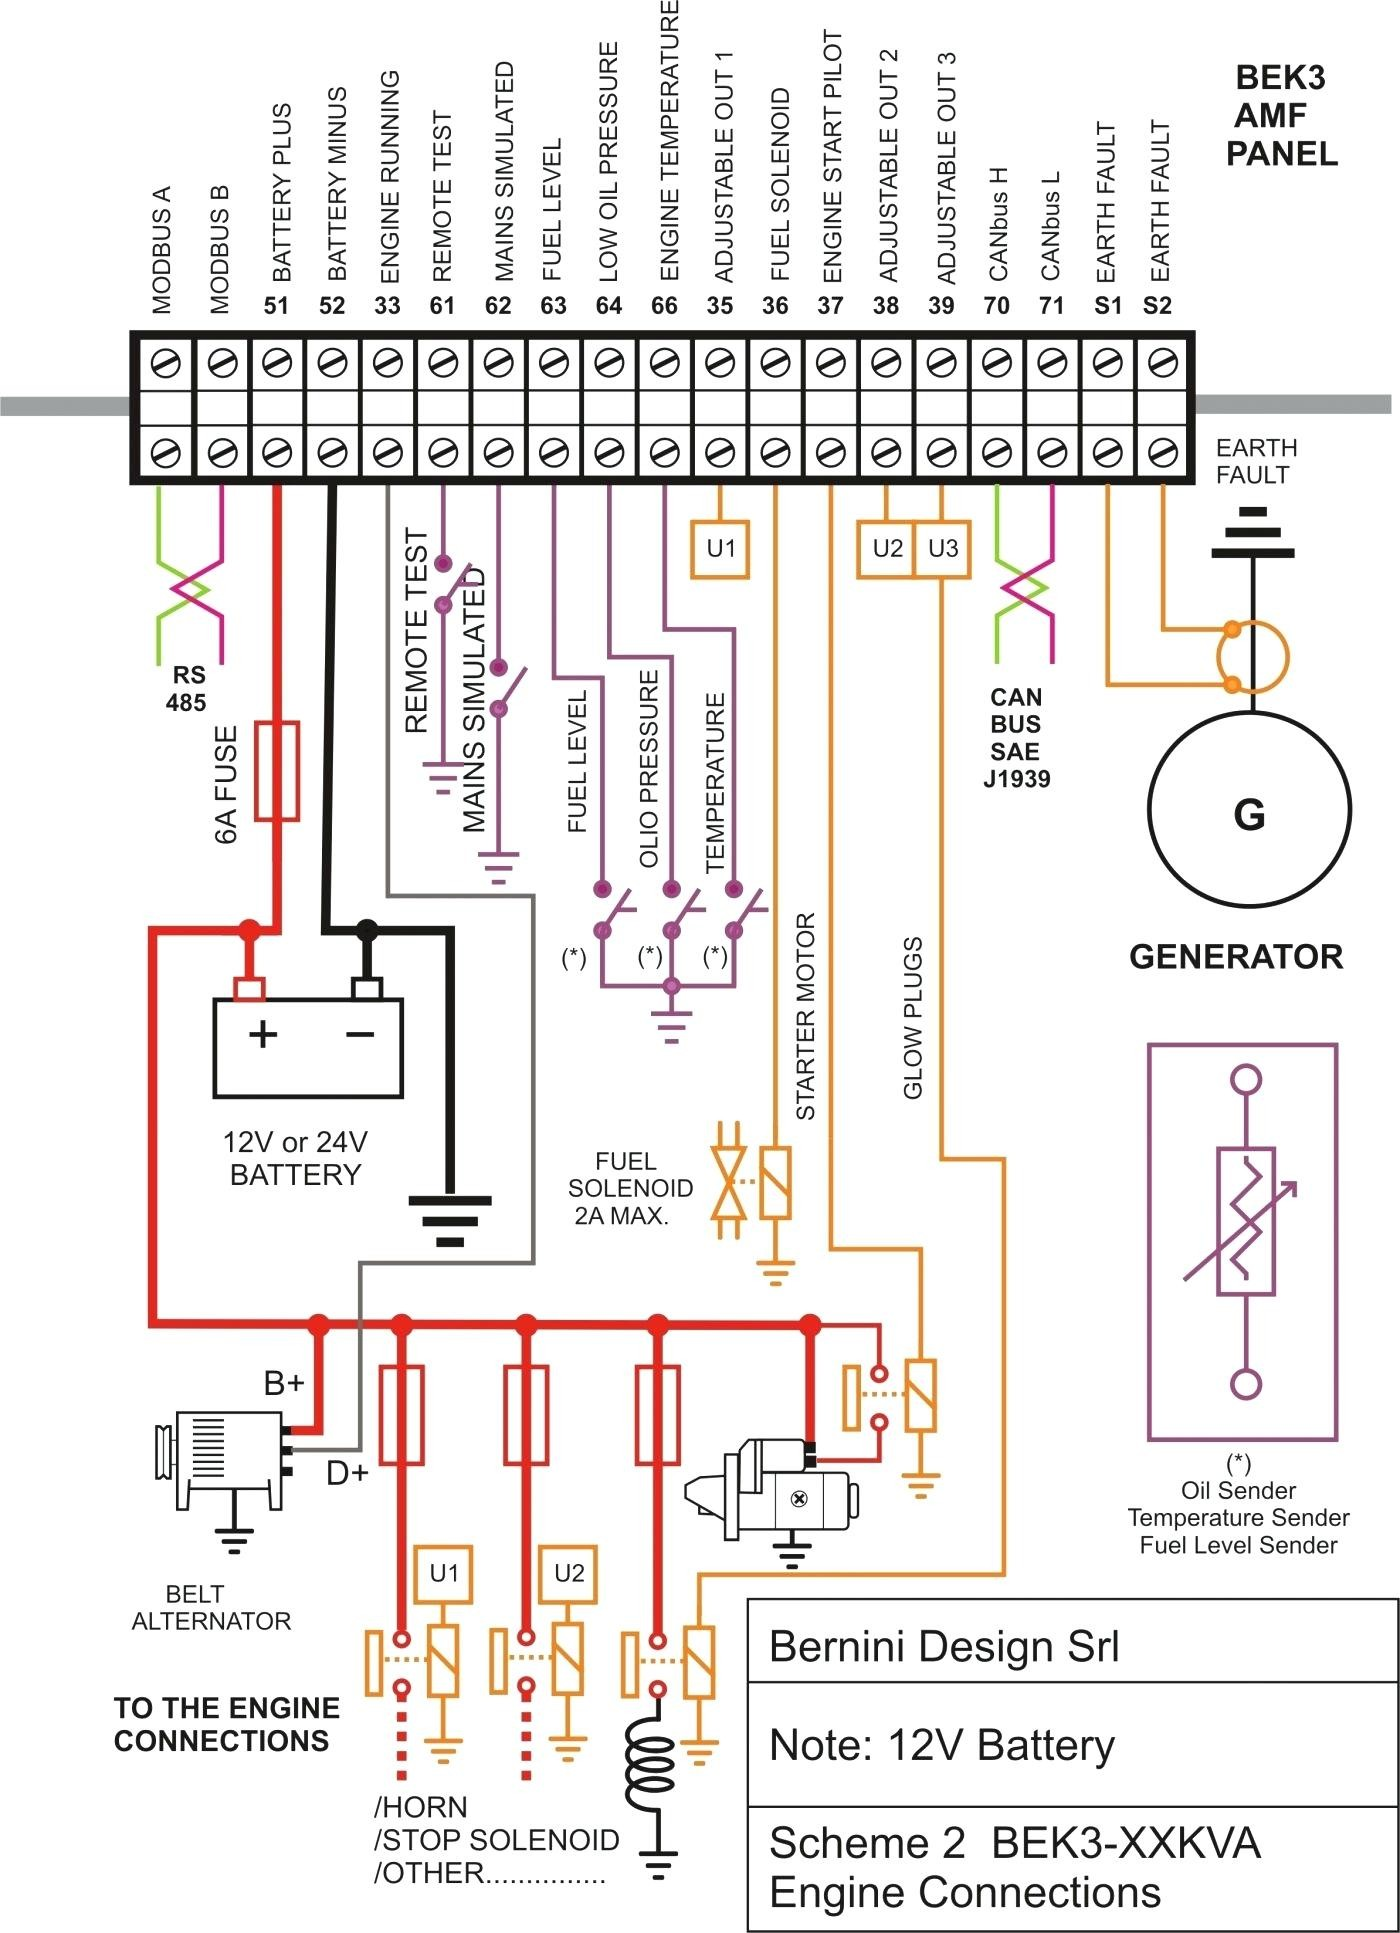 Switch Wiring Diagram On Wiring Diagram Of A Generator Transfer Switch